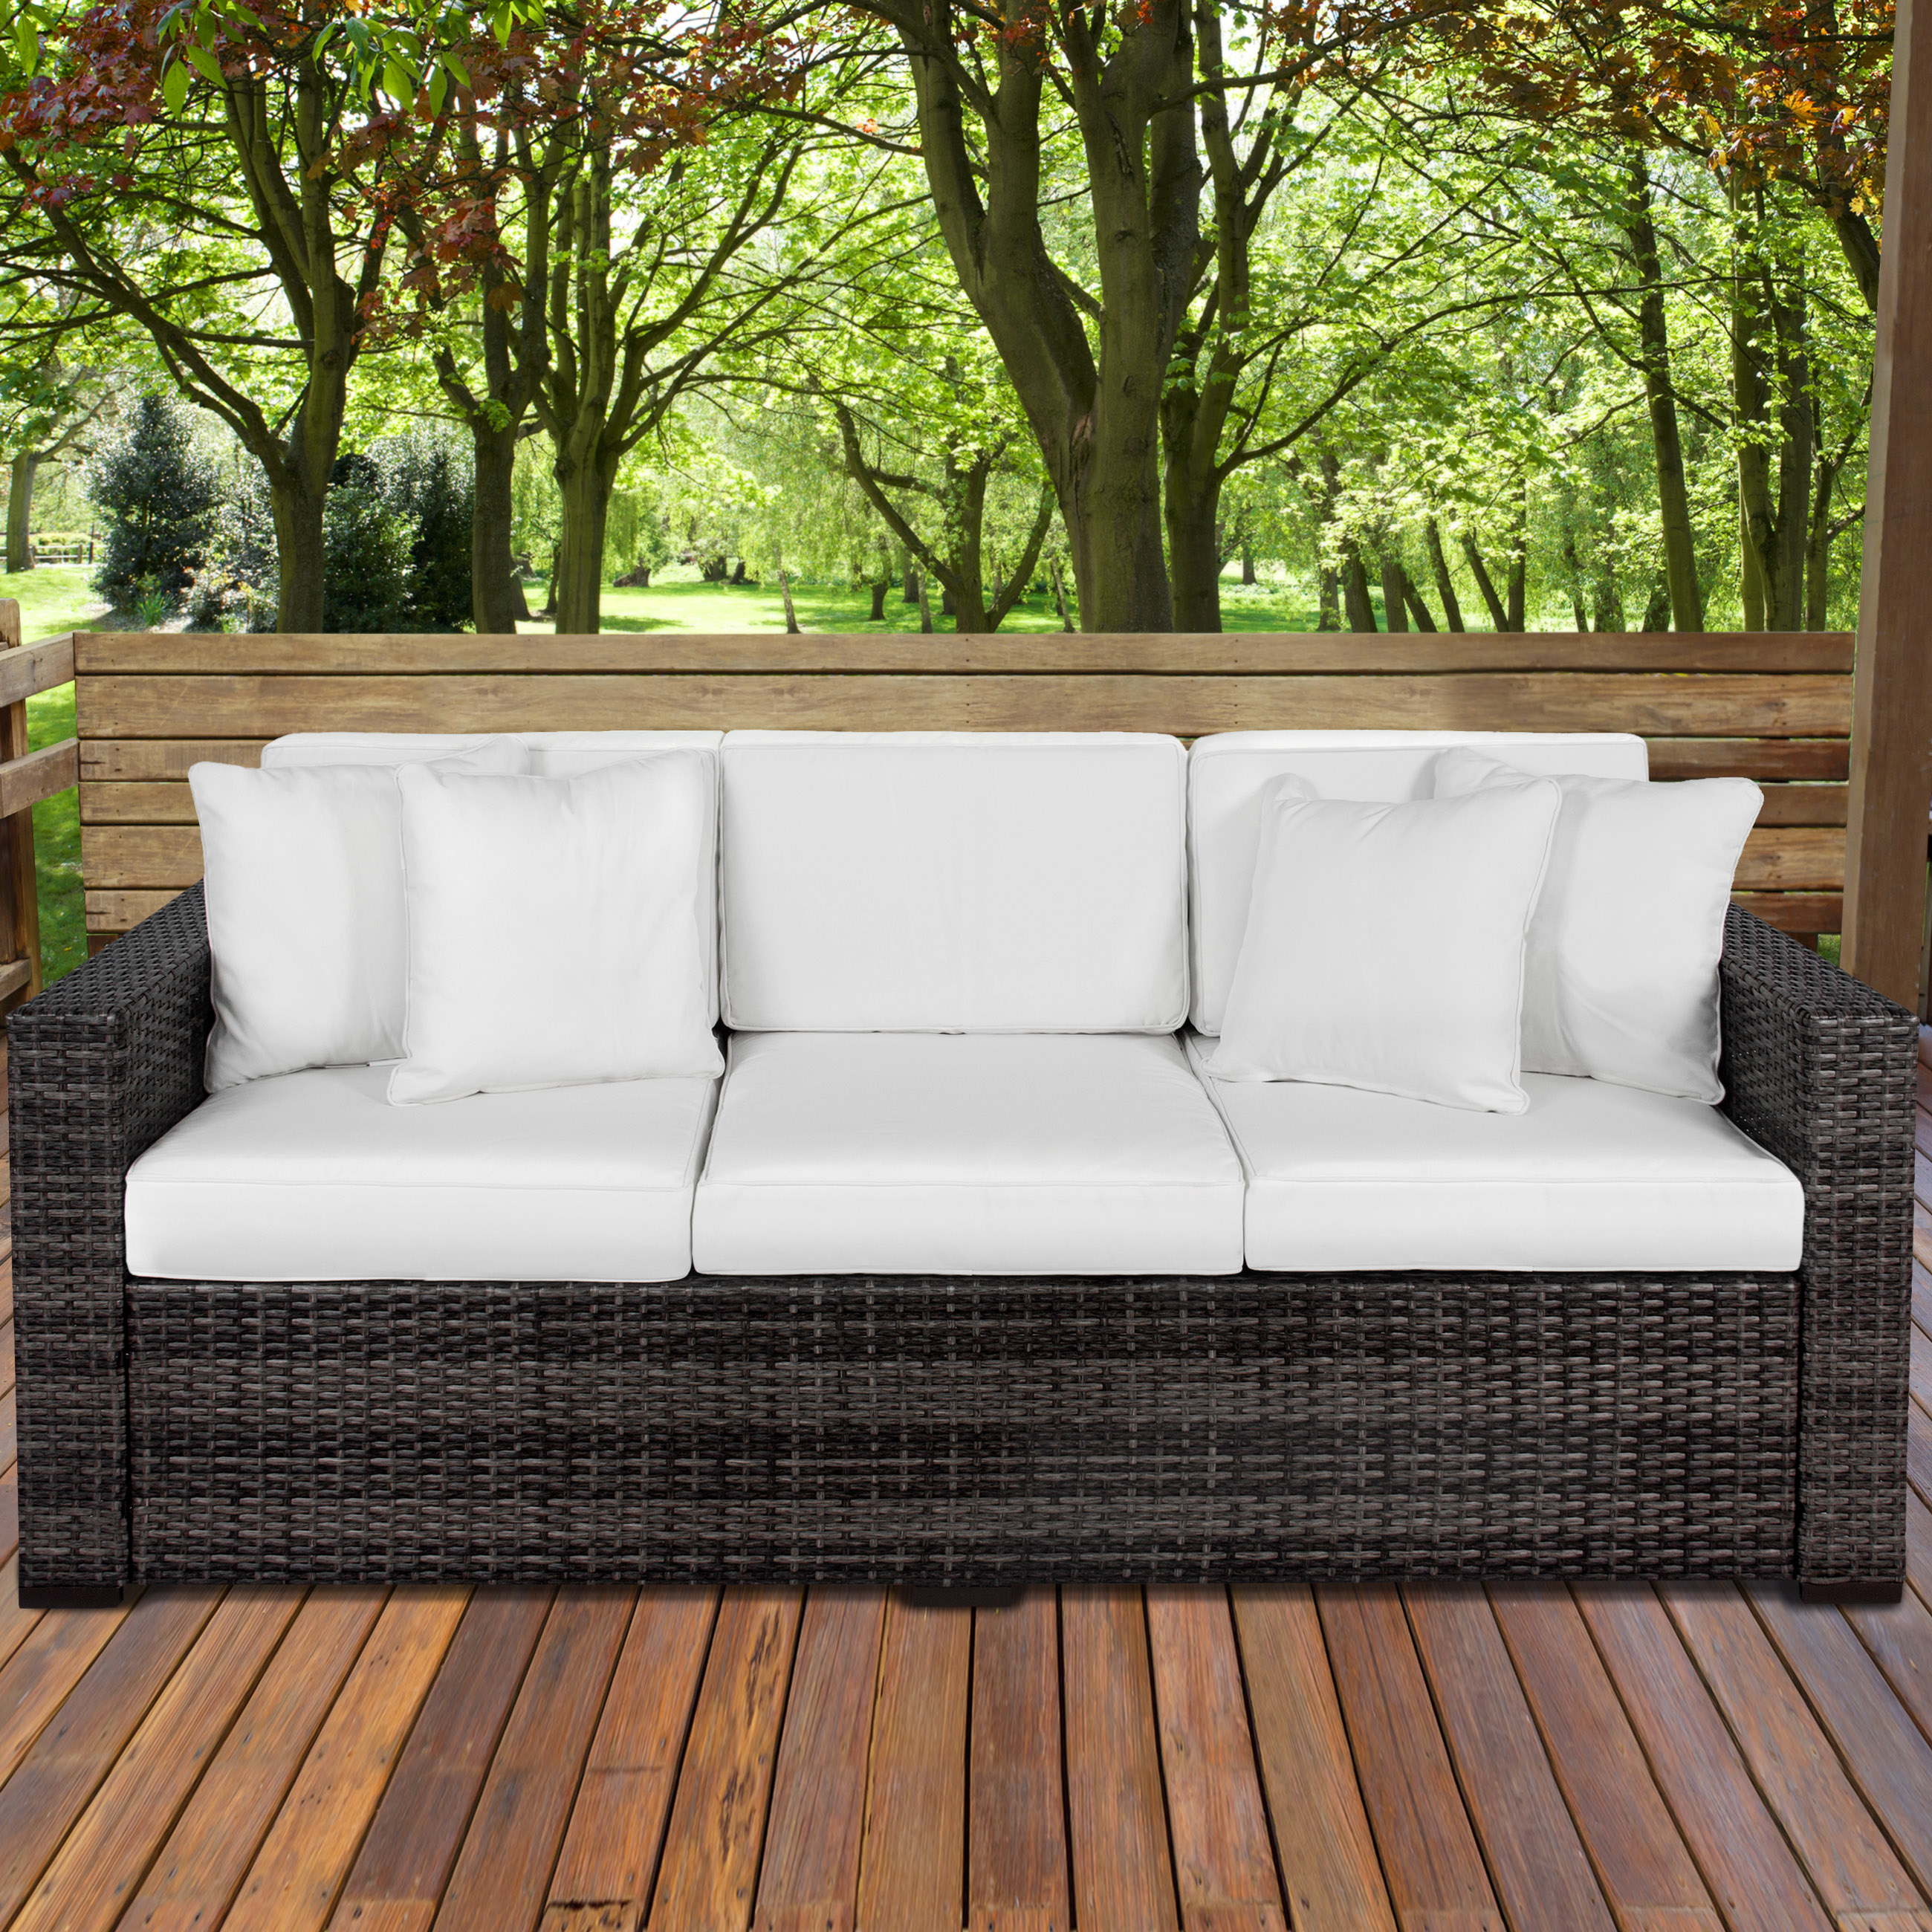 outdoor wicker patio furniture sofa 3 seater luxury comfort grey wicker couch - Sectional Patio Furniture